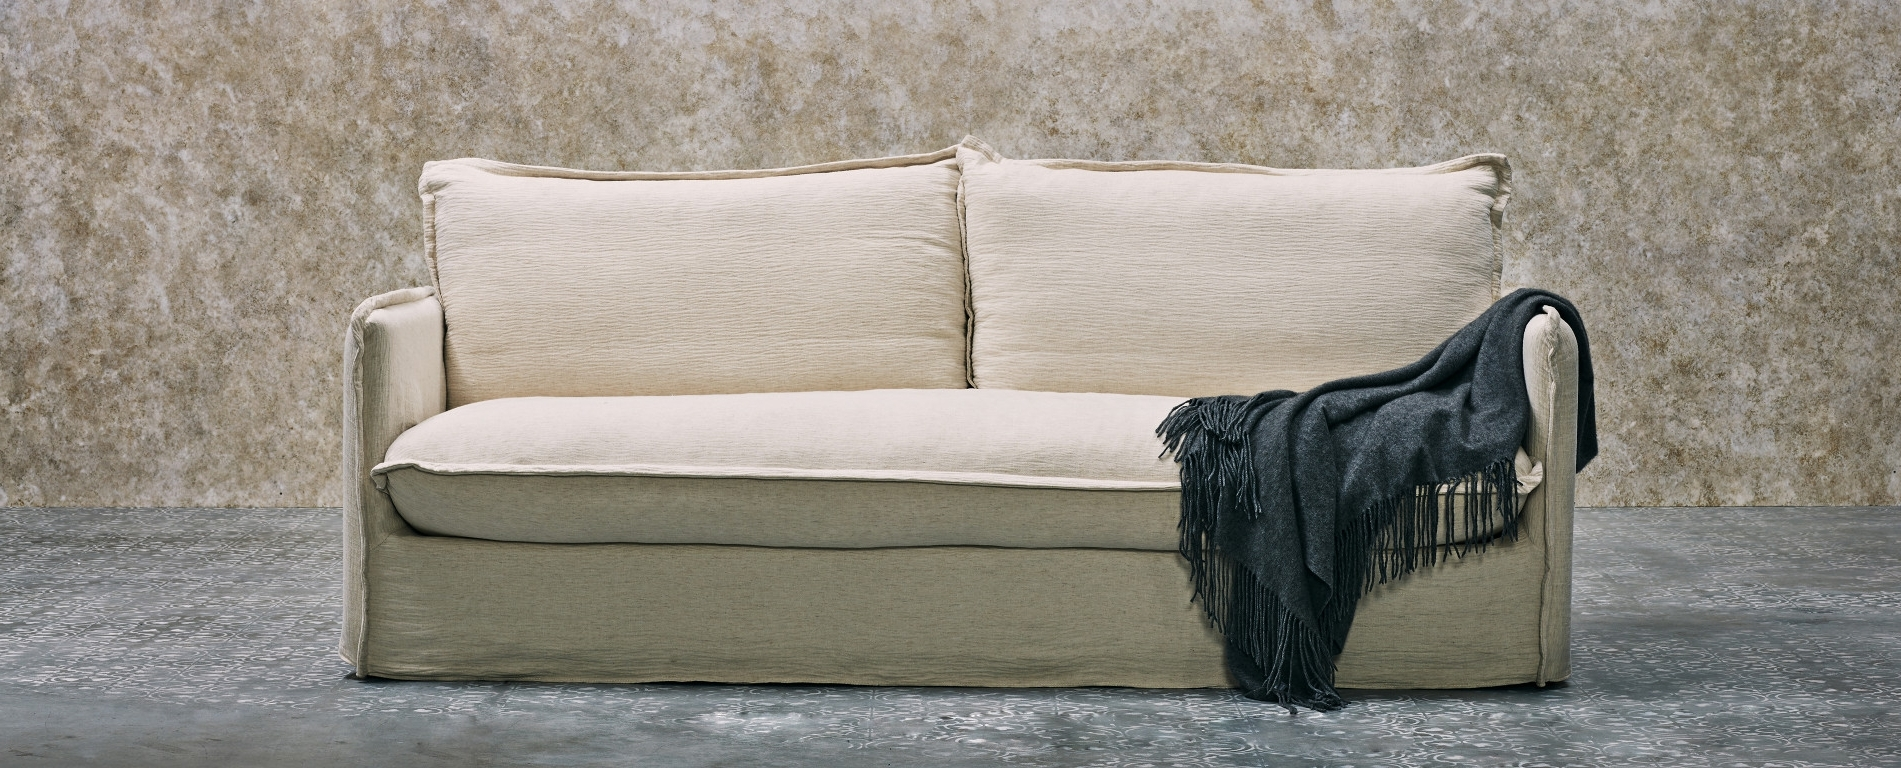 Feather Filled Sofa W/ Pillow Style Cushions (View 14 of 20)